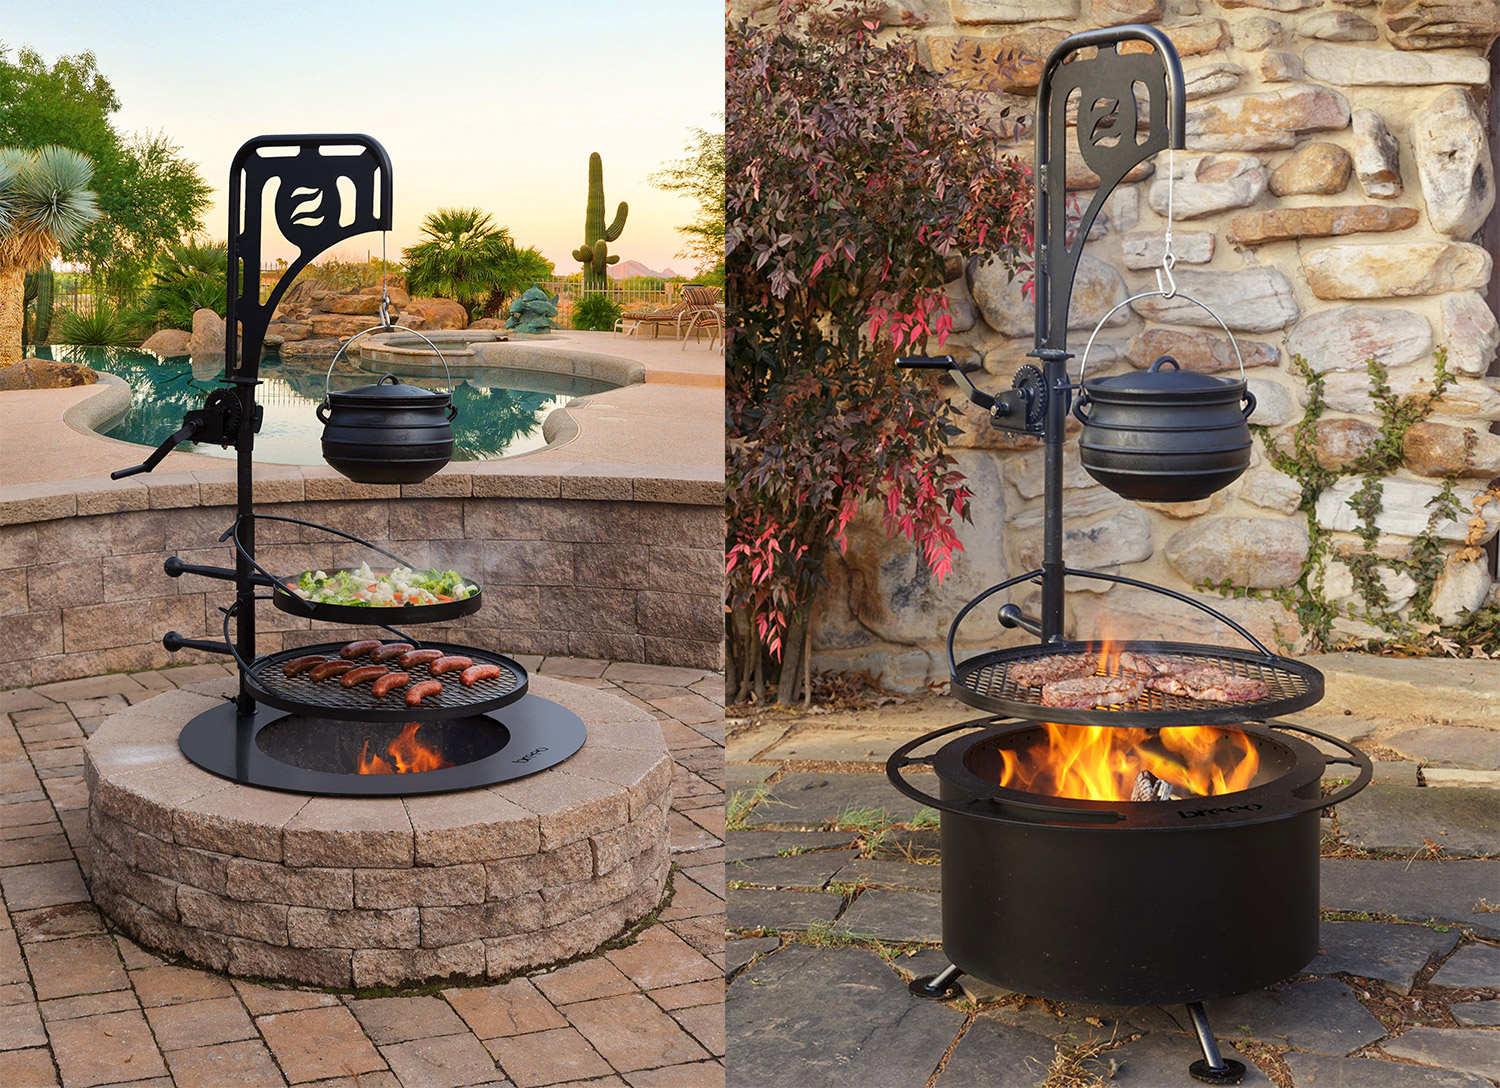 Image of: This Ultimate Campfire Grill Turns Your Fire Pit Into A Tiered Cooking Machine With A Winch